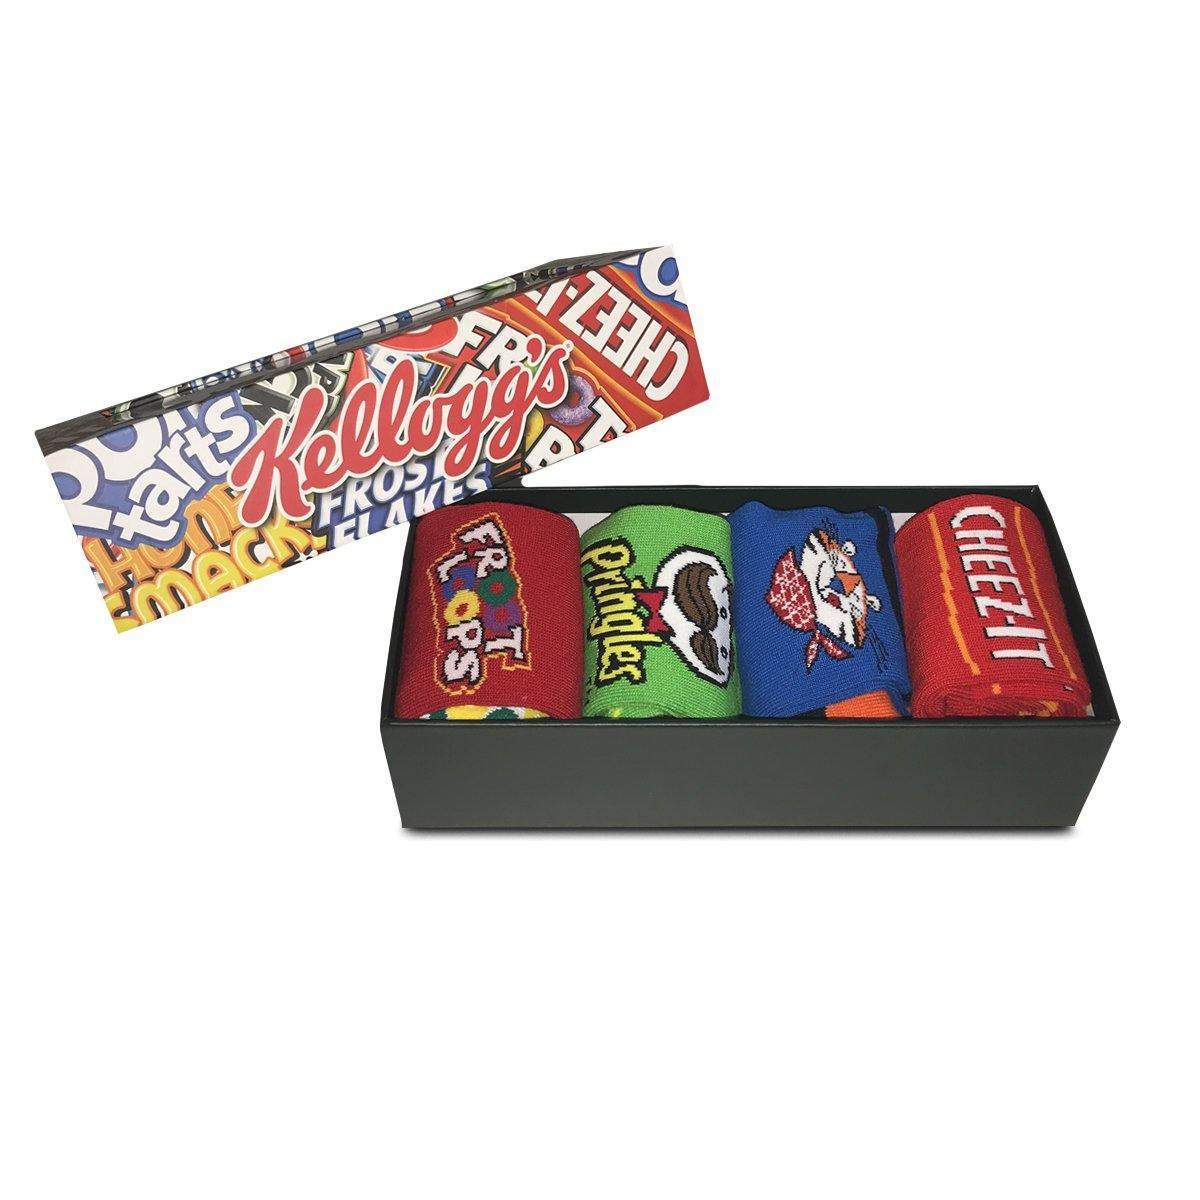 Kellogg's 4 Pack Gift Set